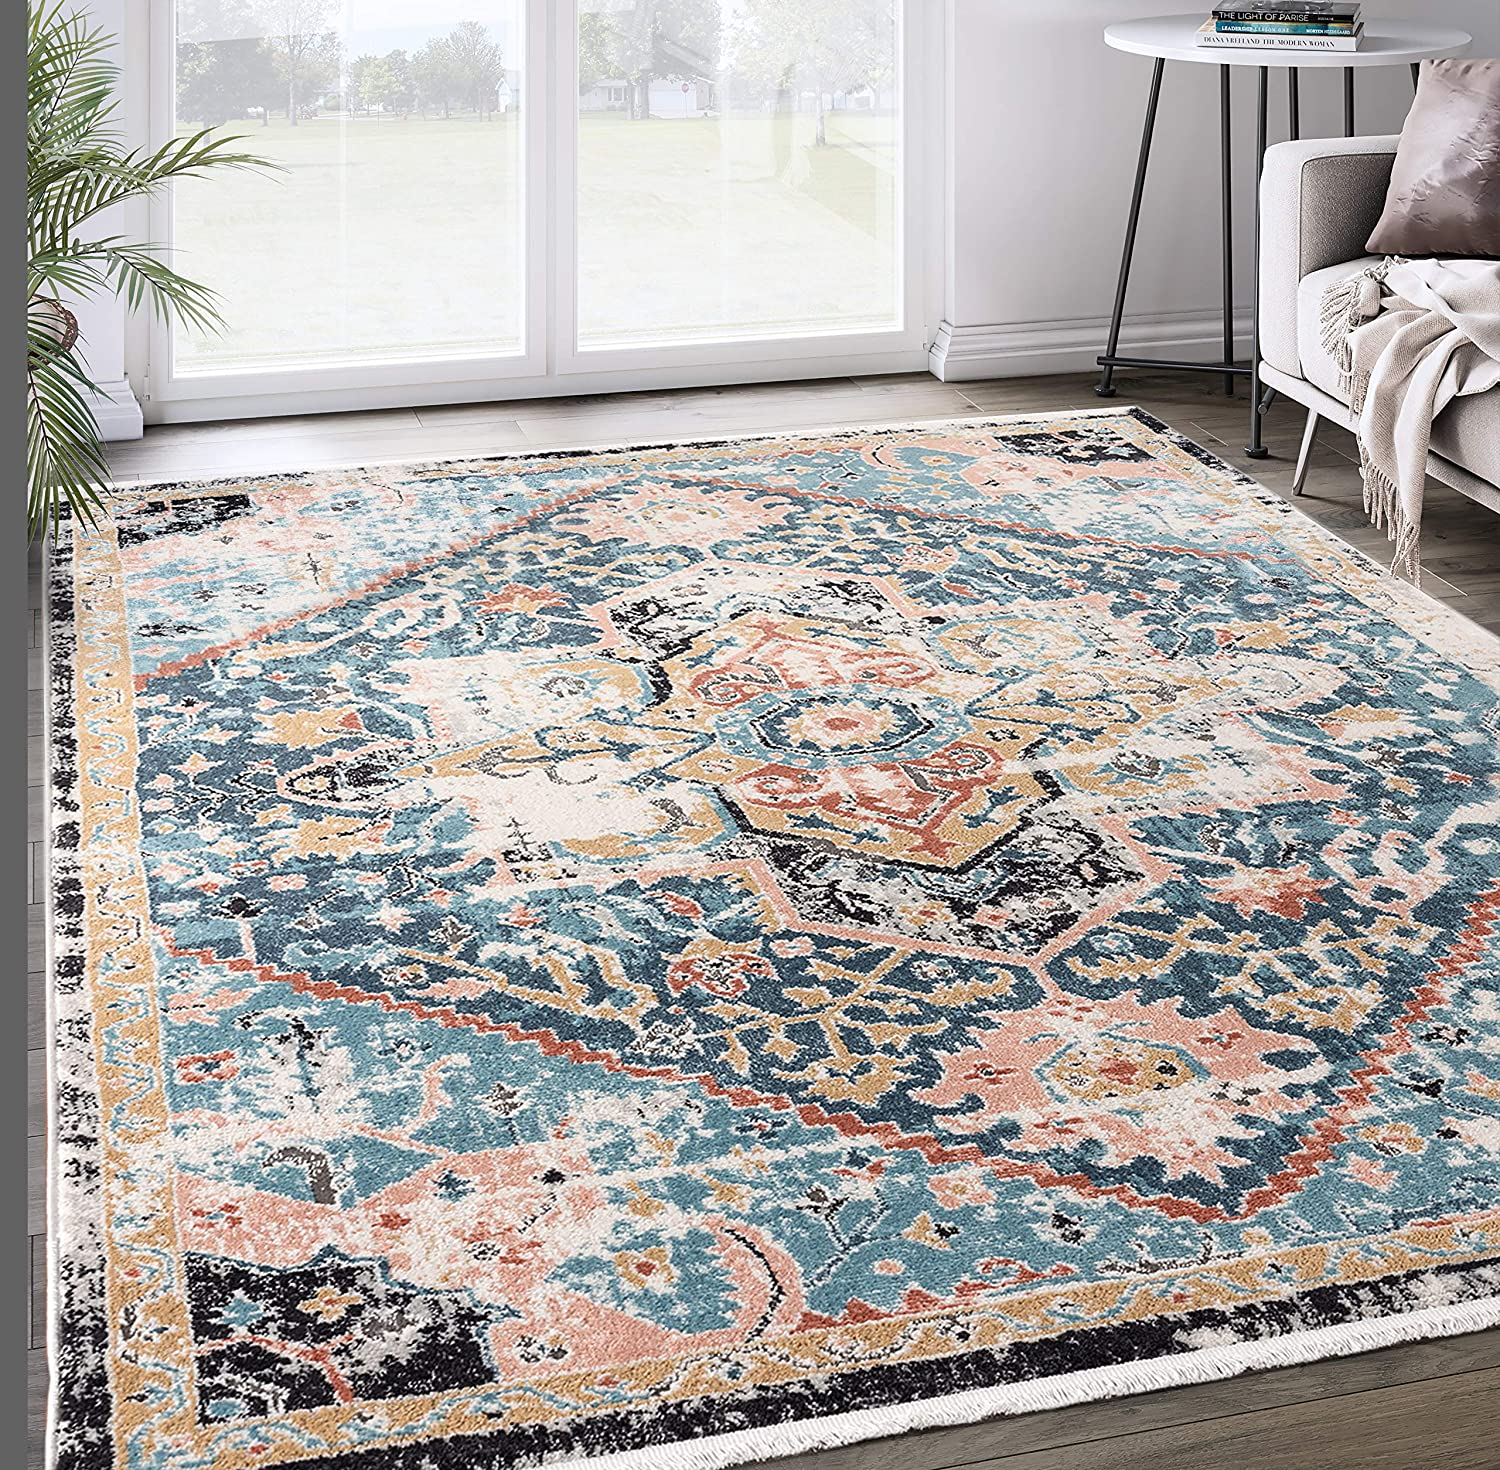 Abani Rugs Teal Blue Medallion Persian Area Rug Azure Collection 6 X9 Faded Accent Rug Kitchen Dining